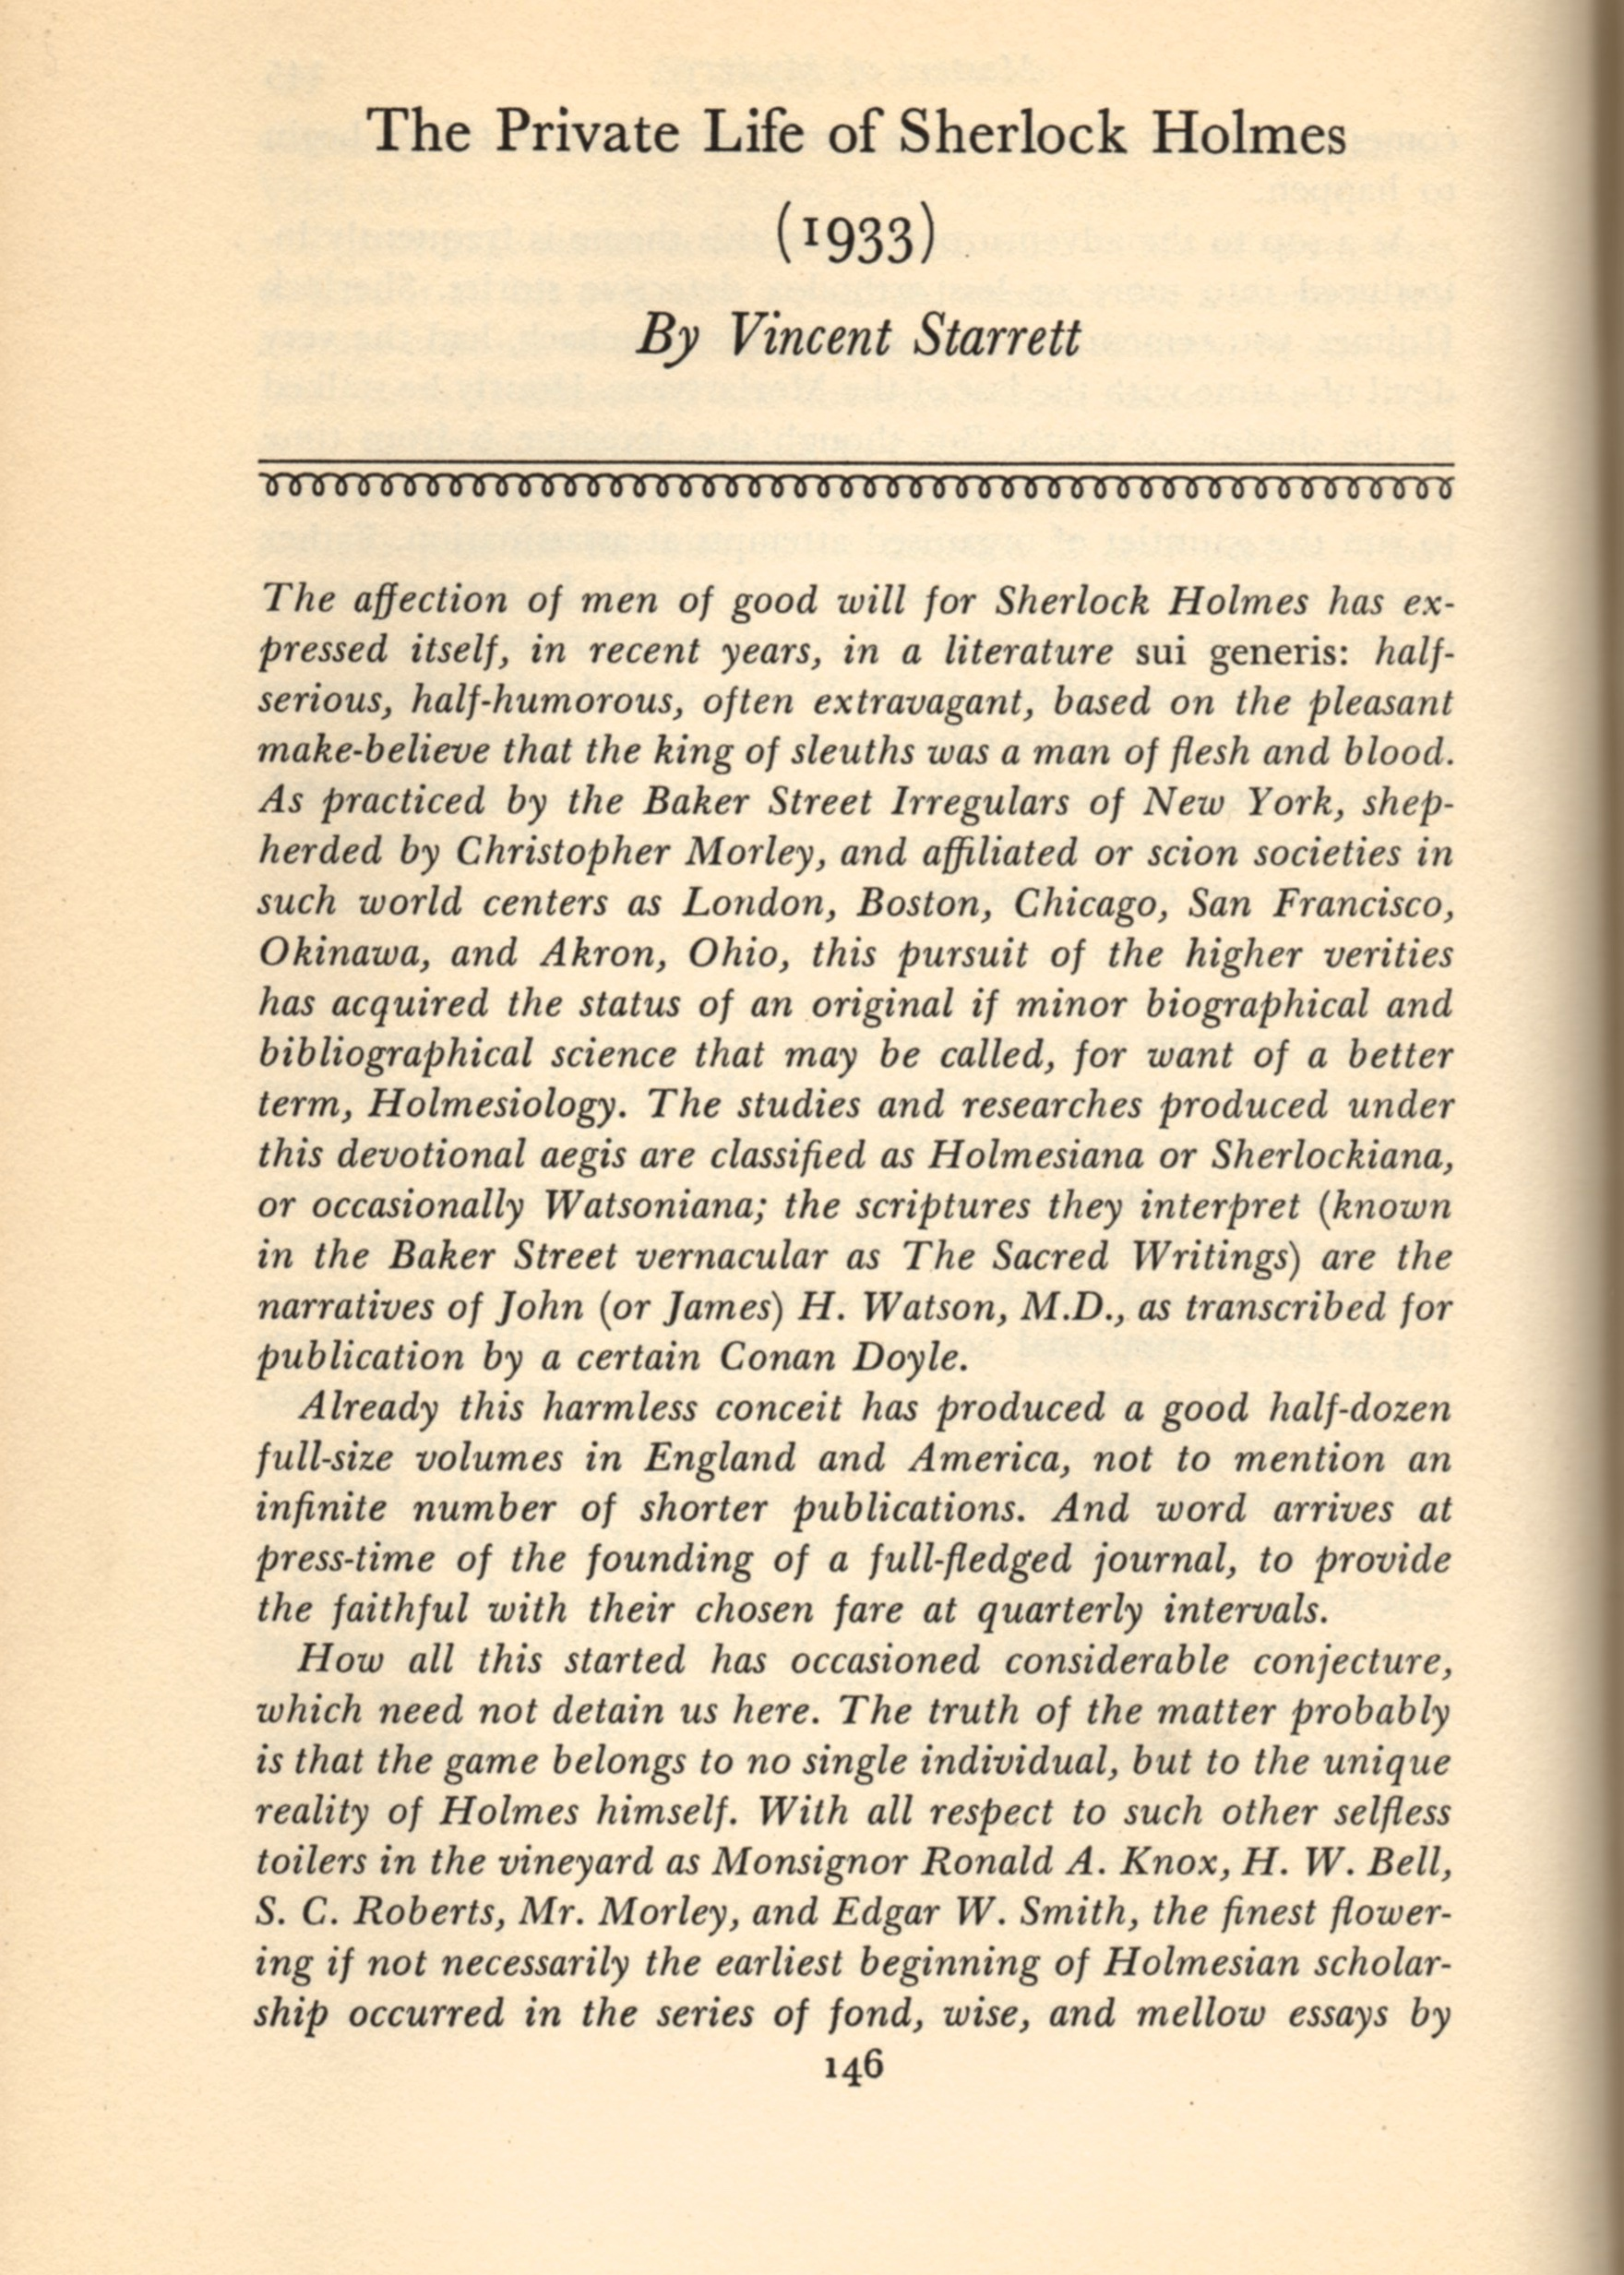 The first of the two-page introduction of Starrett's chapter.